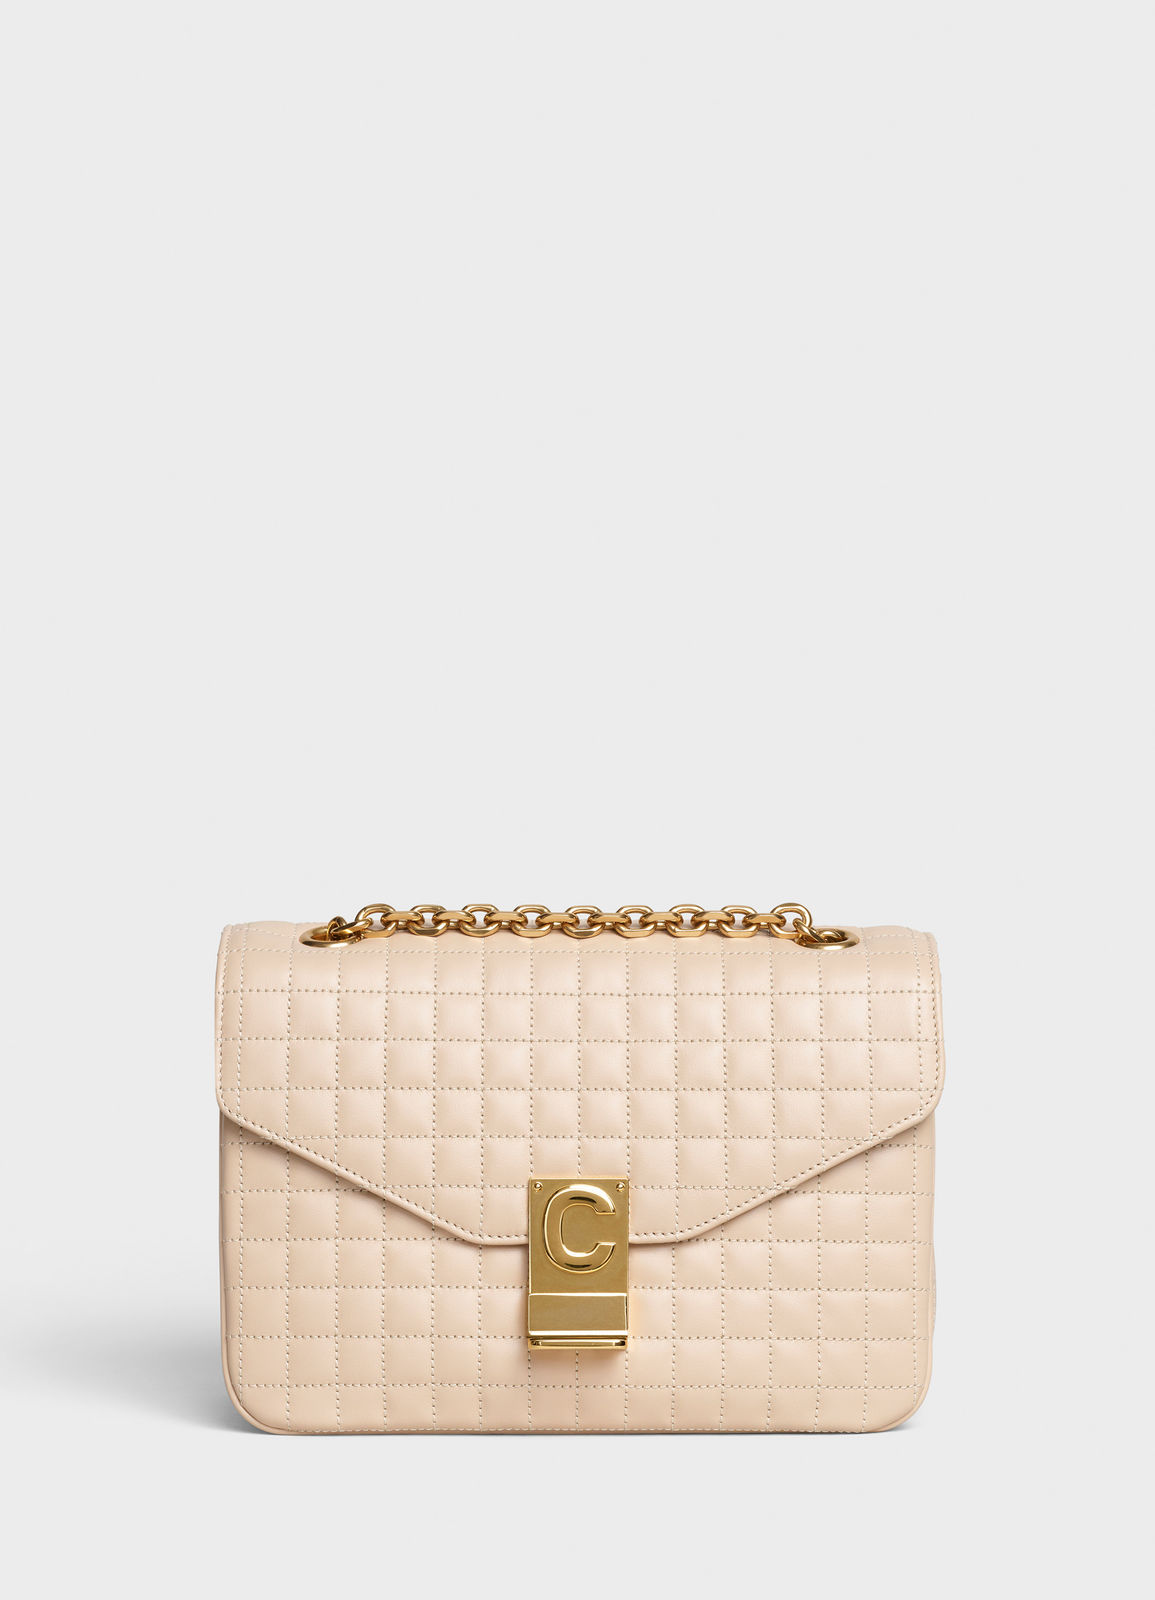 CELINE MEDIUM C BAG IN BICOLOUR QUILTED CALFSKIN CL87253 cream